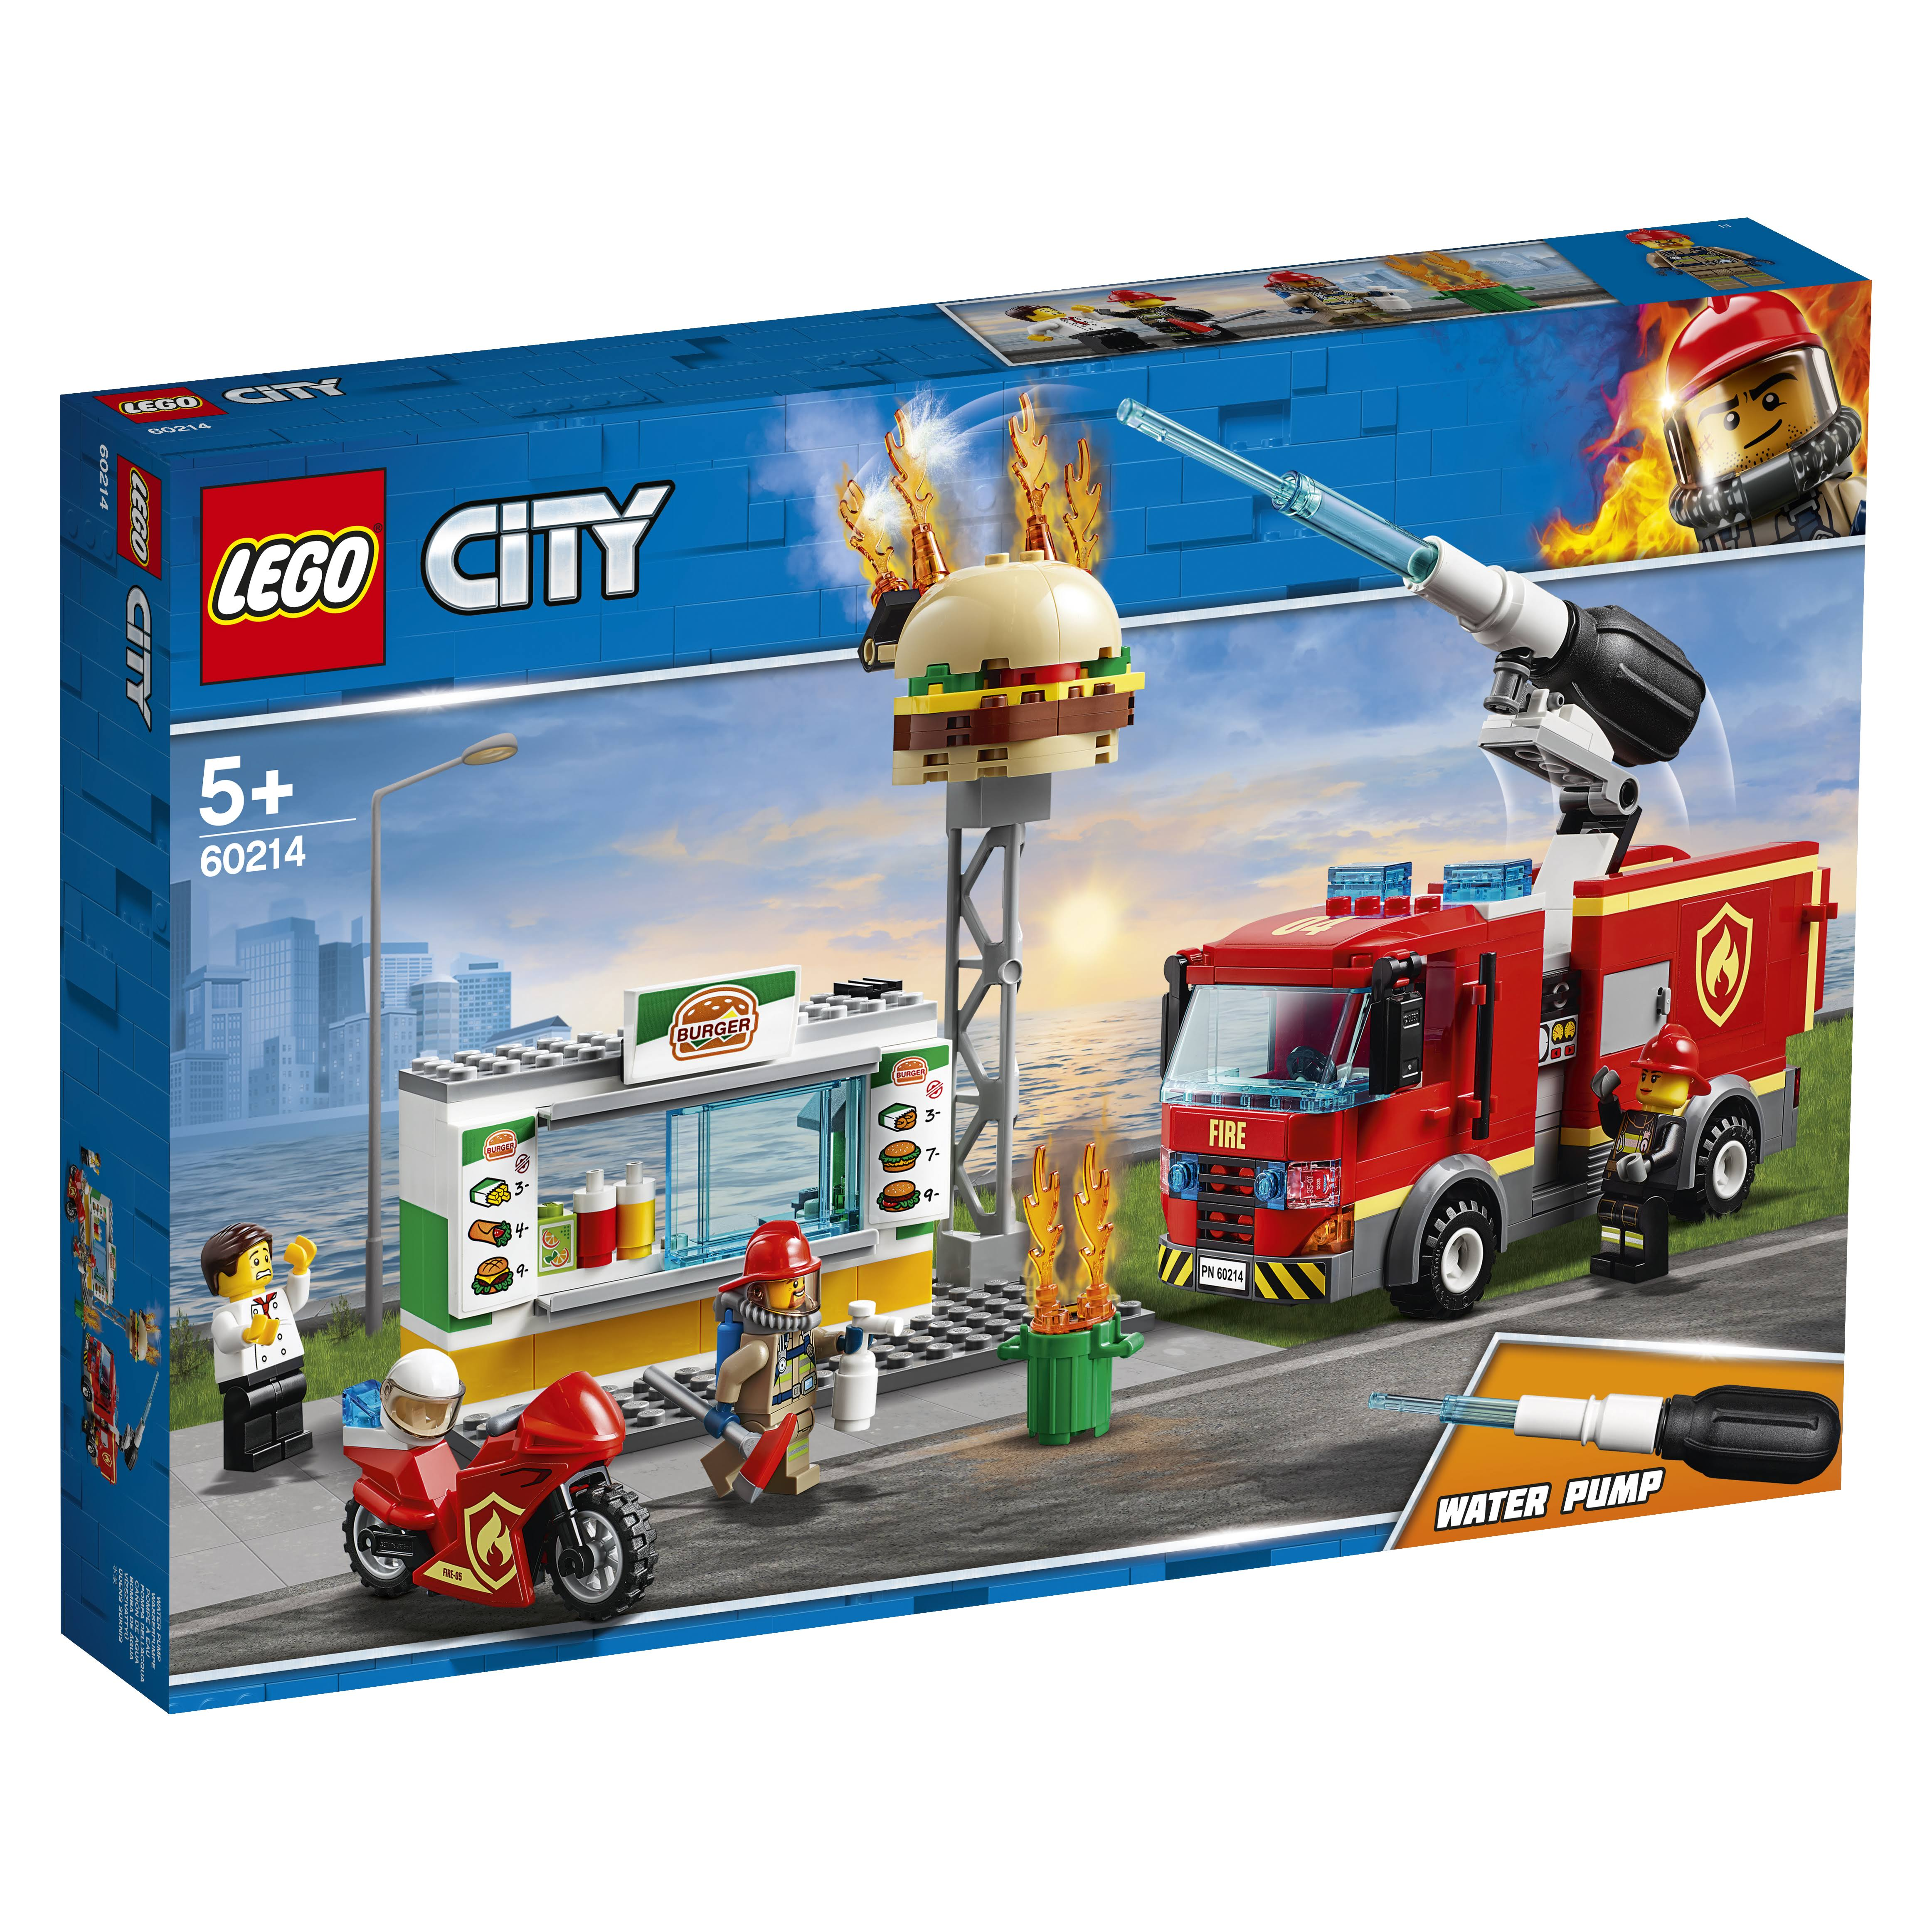 Lego City Fire at the Burger Restaurant Building Set